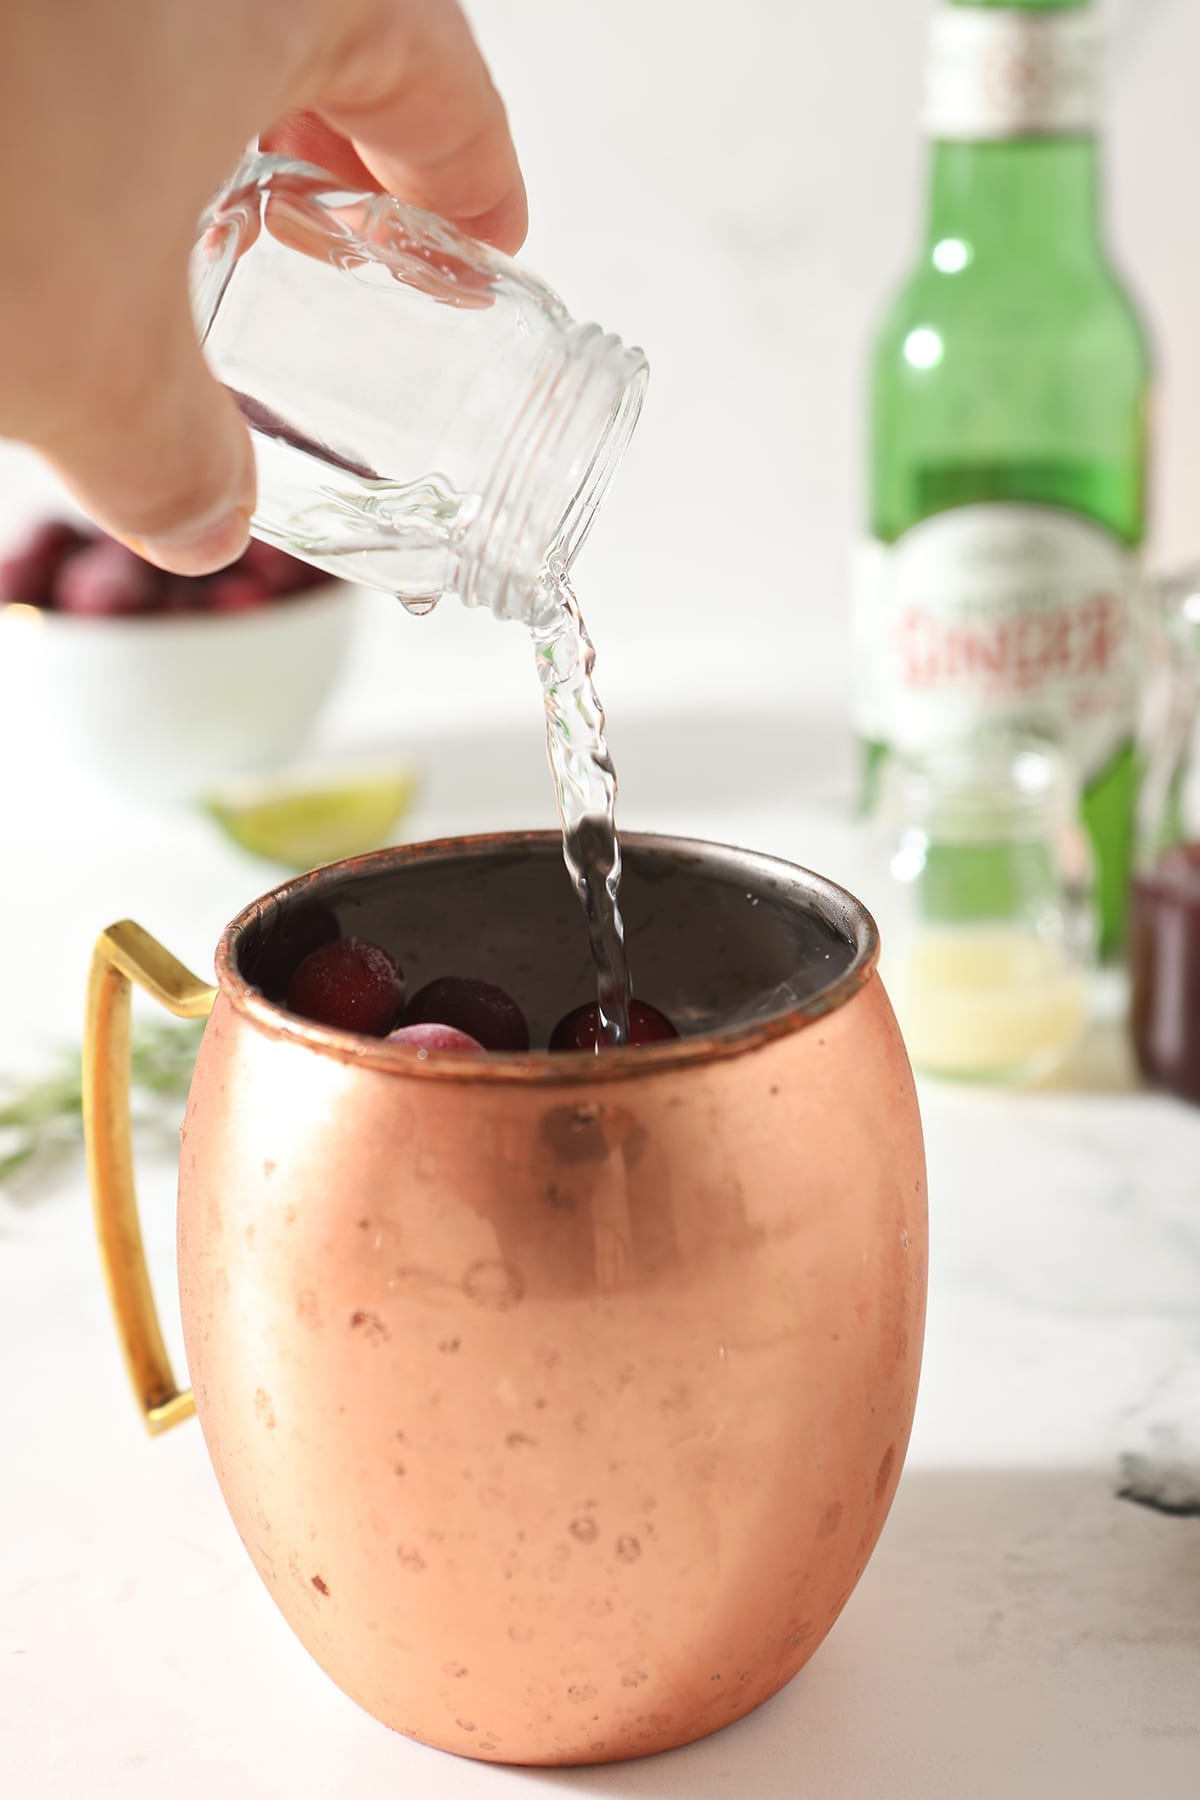 Vodka pours into a copper mug holding ice, syrup and cranberries